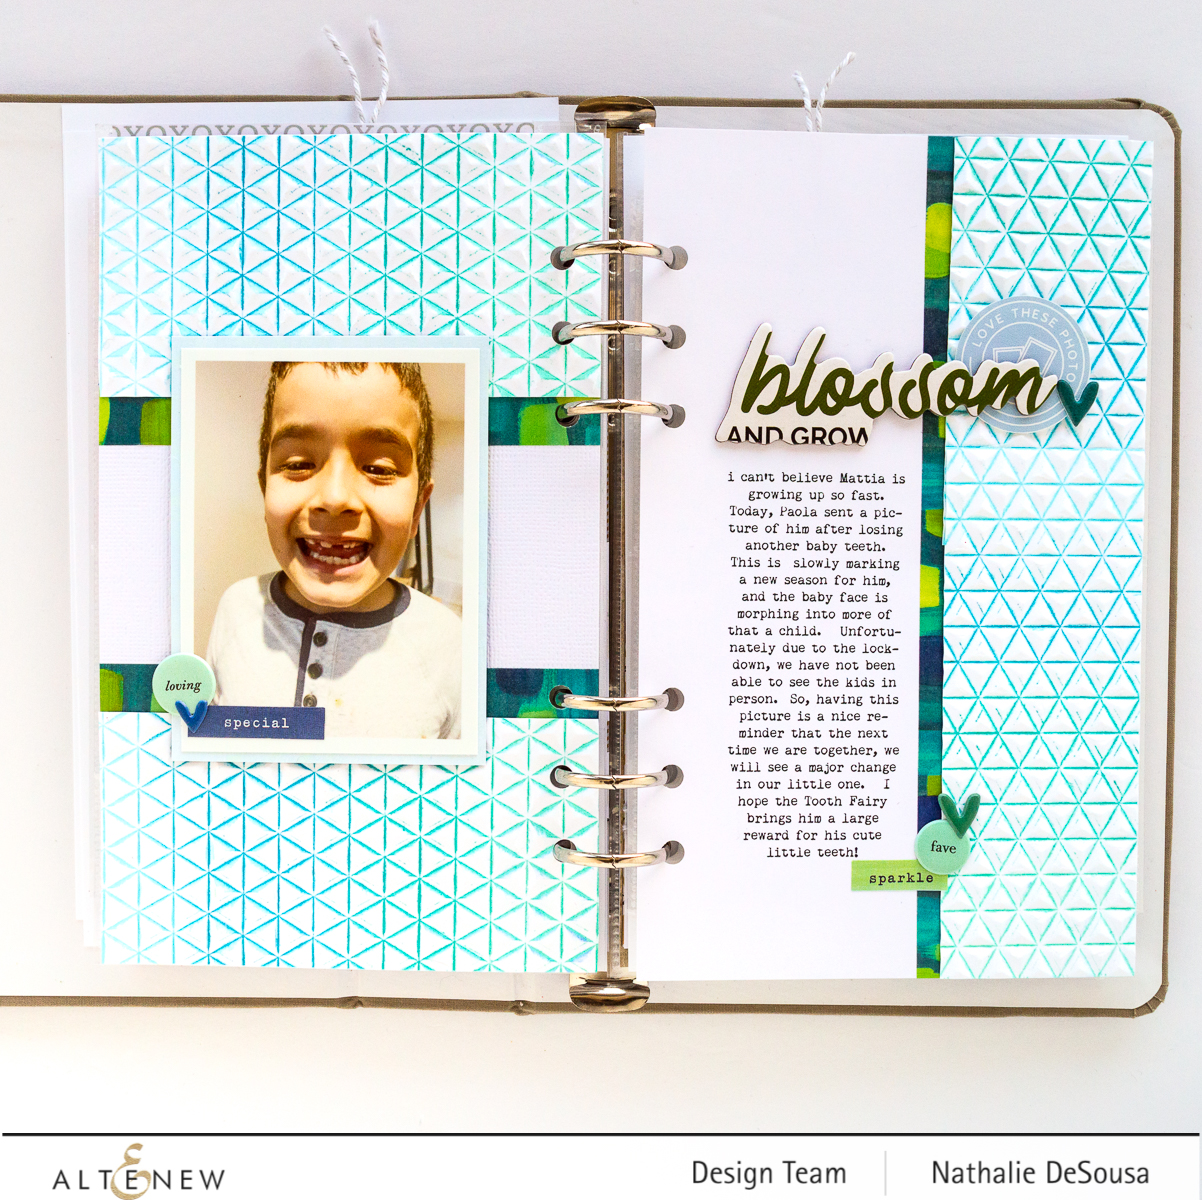 @altenew-EMBOSSING FOLDERS Highlight for Memory Keeping by Nathalie DeSousa